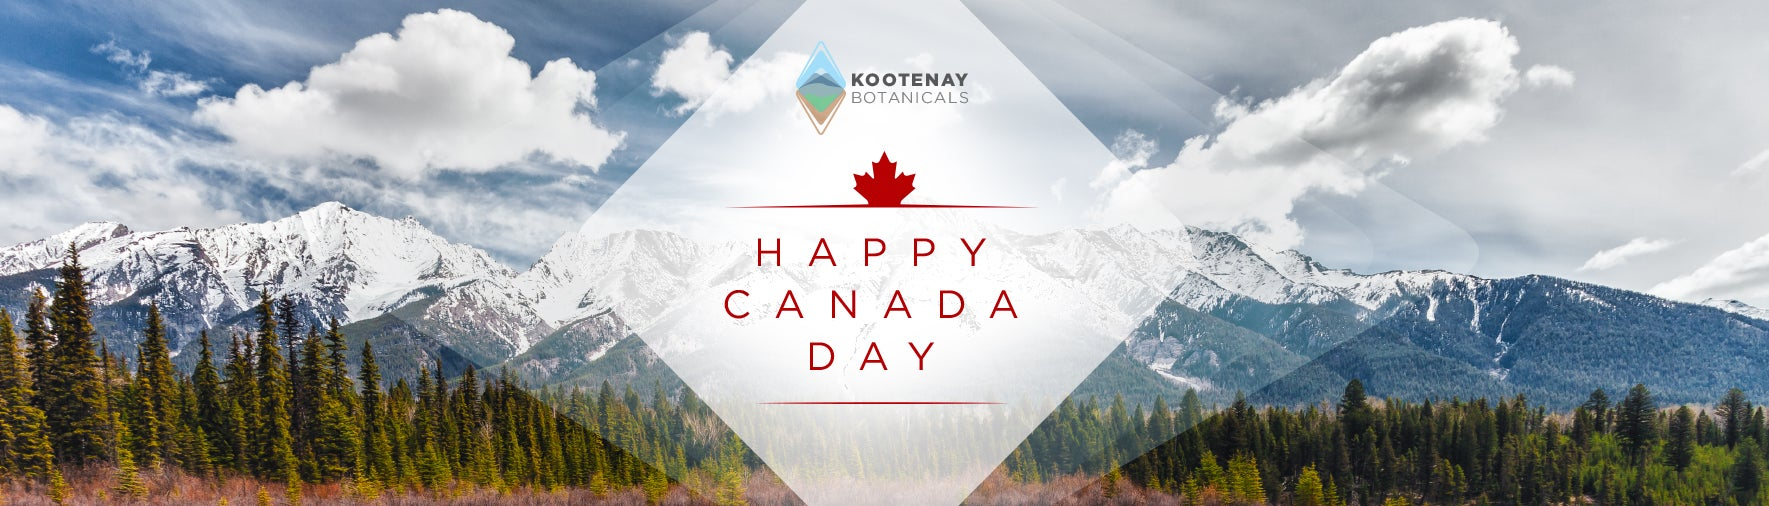 Sales_banner_Canada_Day